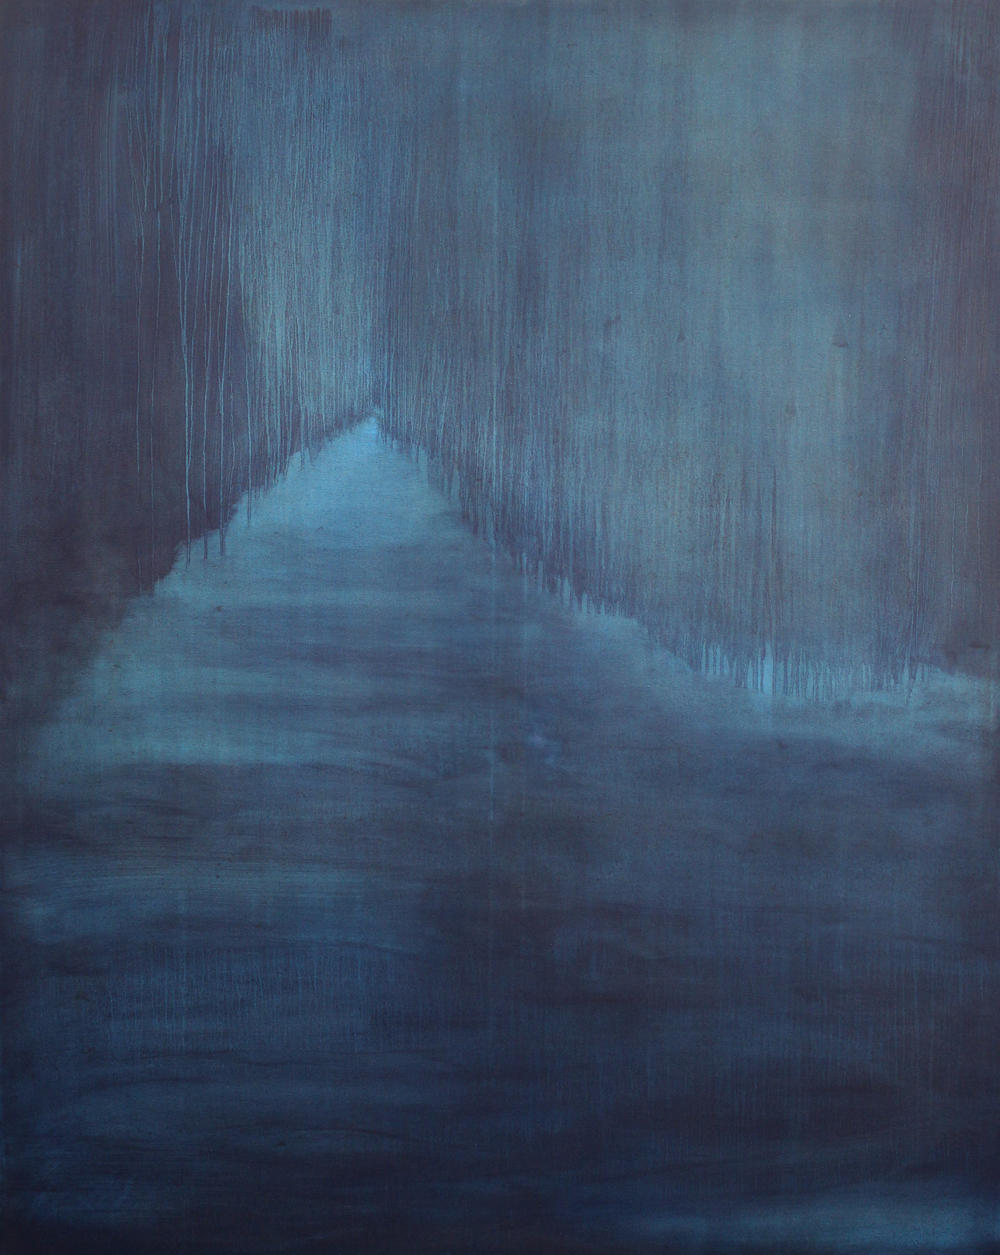 Lush, 2015, oil on canvas, 150 x 120cm